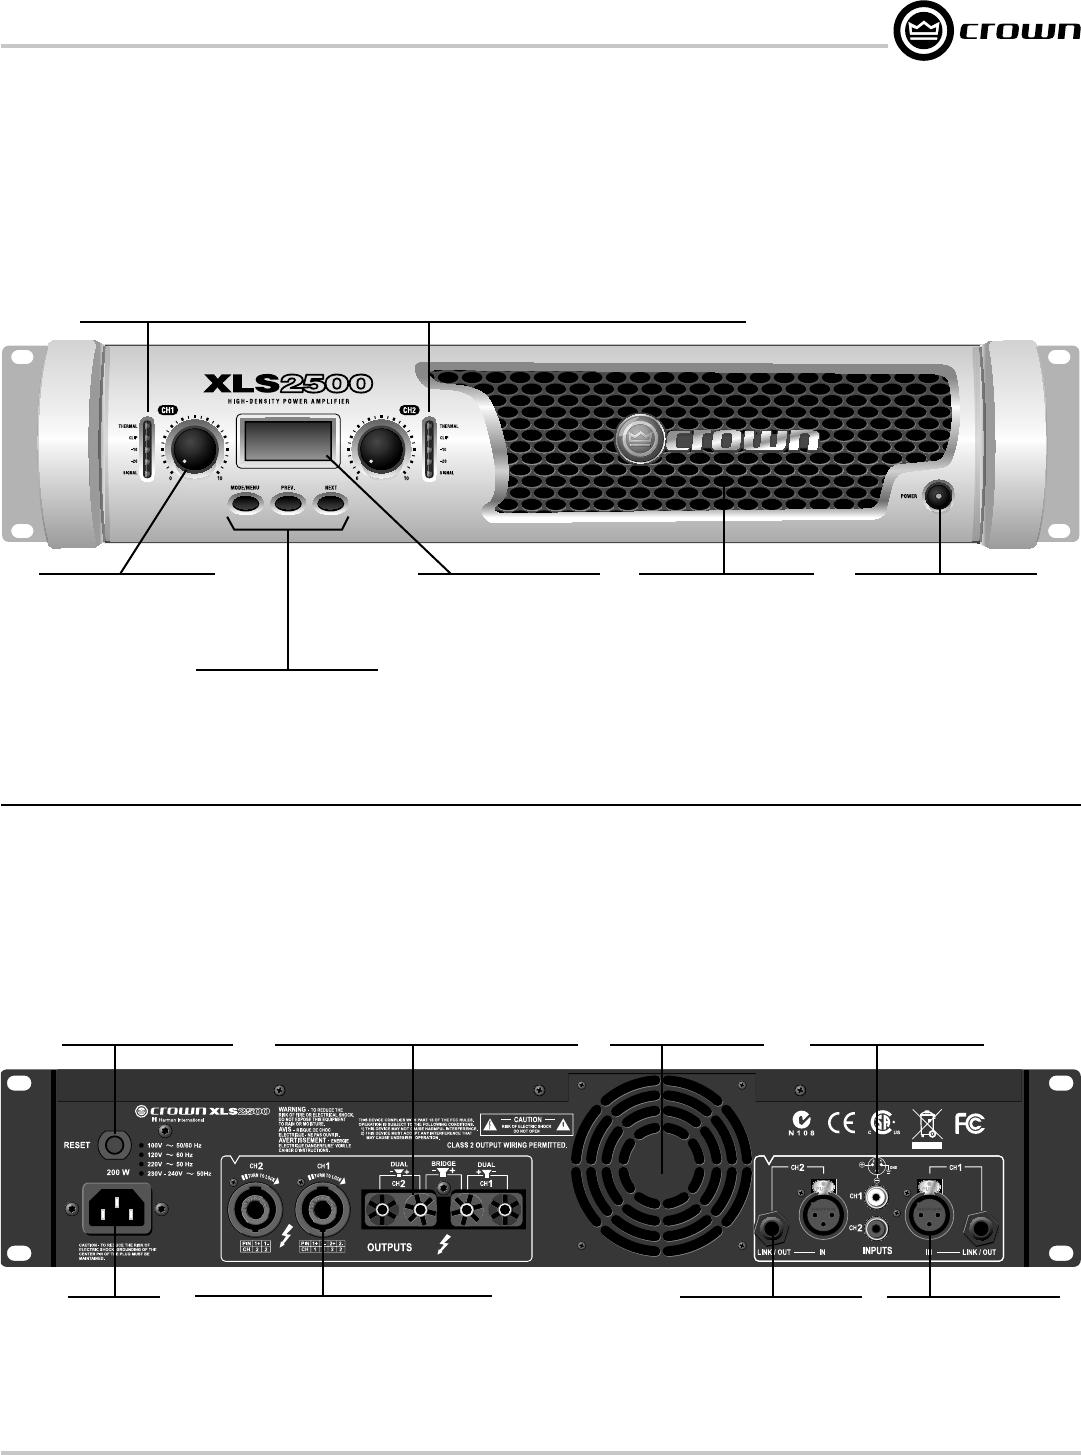 Crown Xls 1000 Front Panel Features Back Wiring